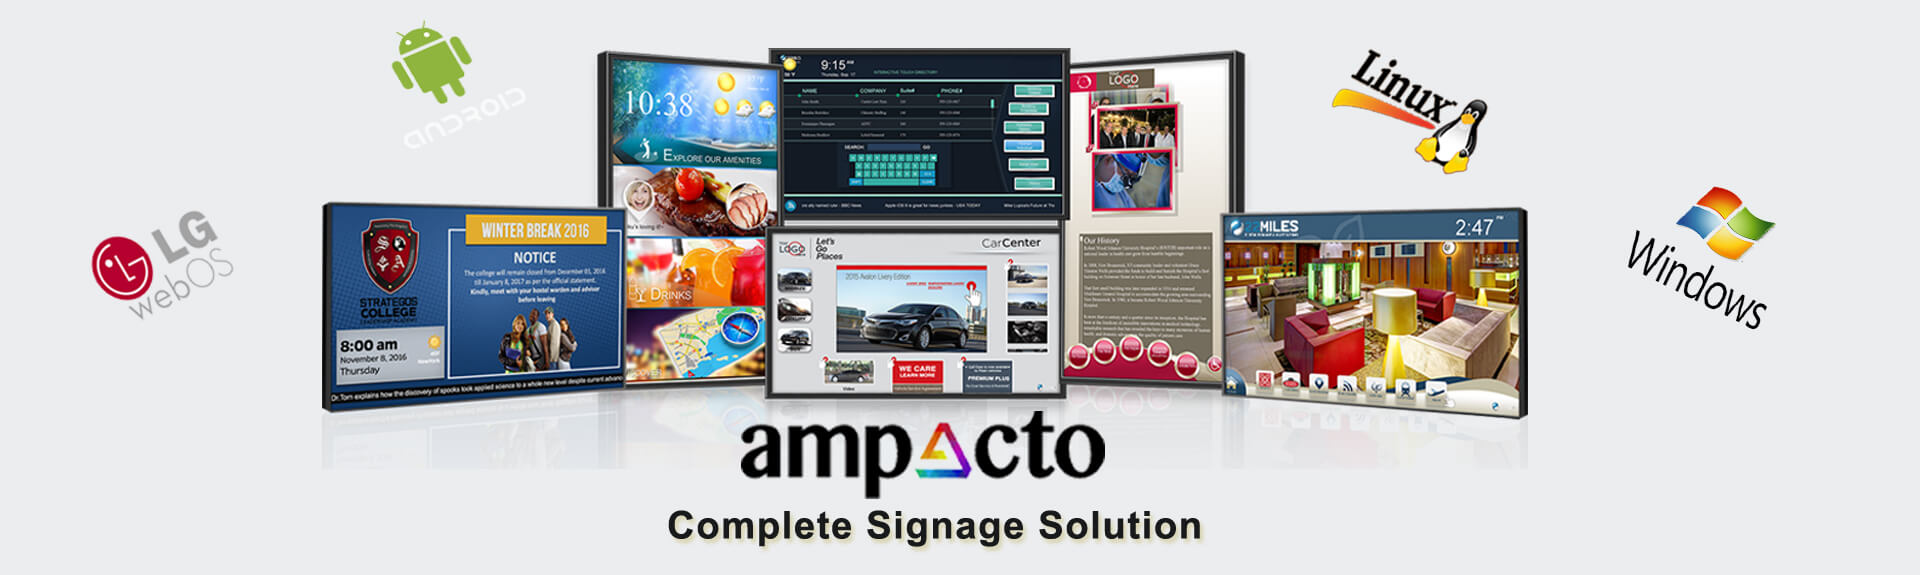 Ampacto Complete Digital Signage Solution India